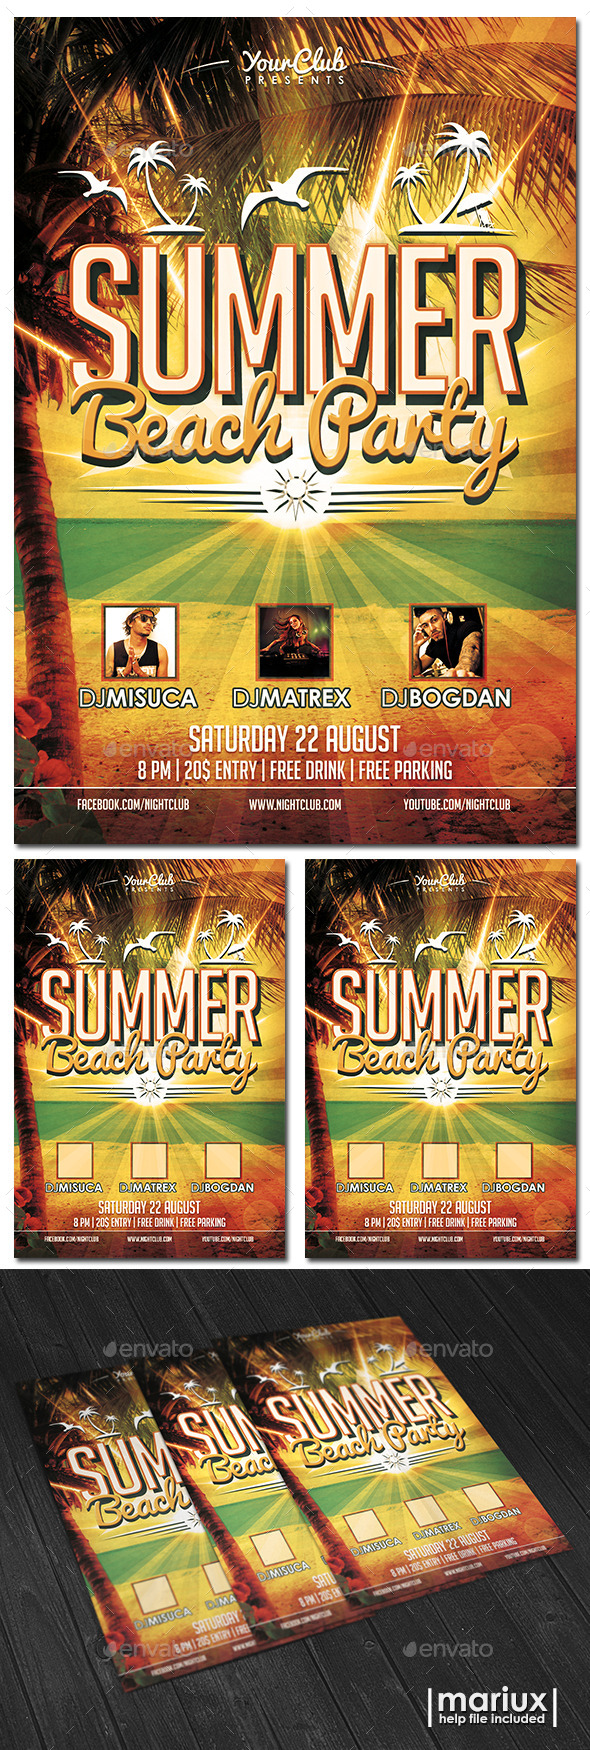 GraphicRiver Summer Beach Party Flyer 11648098